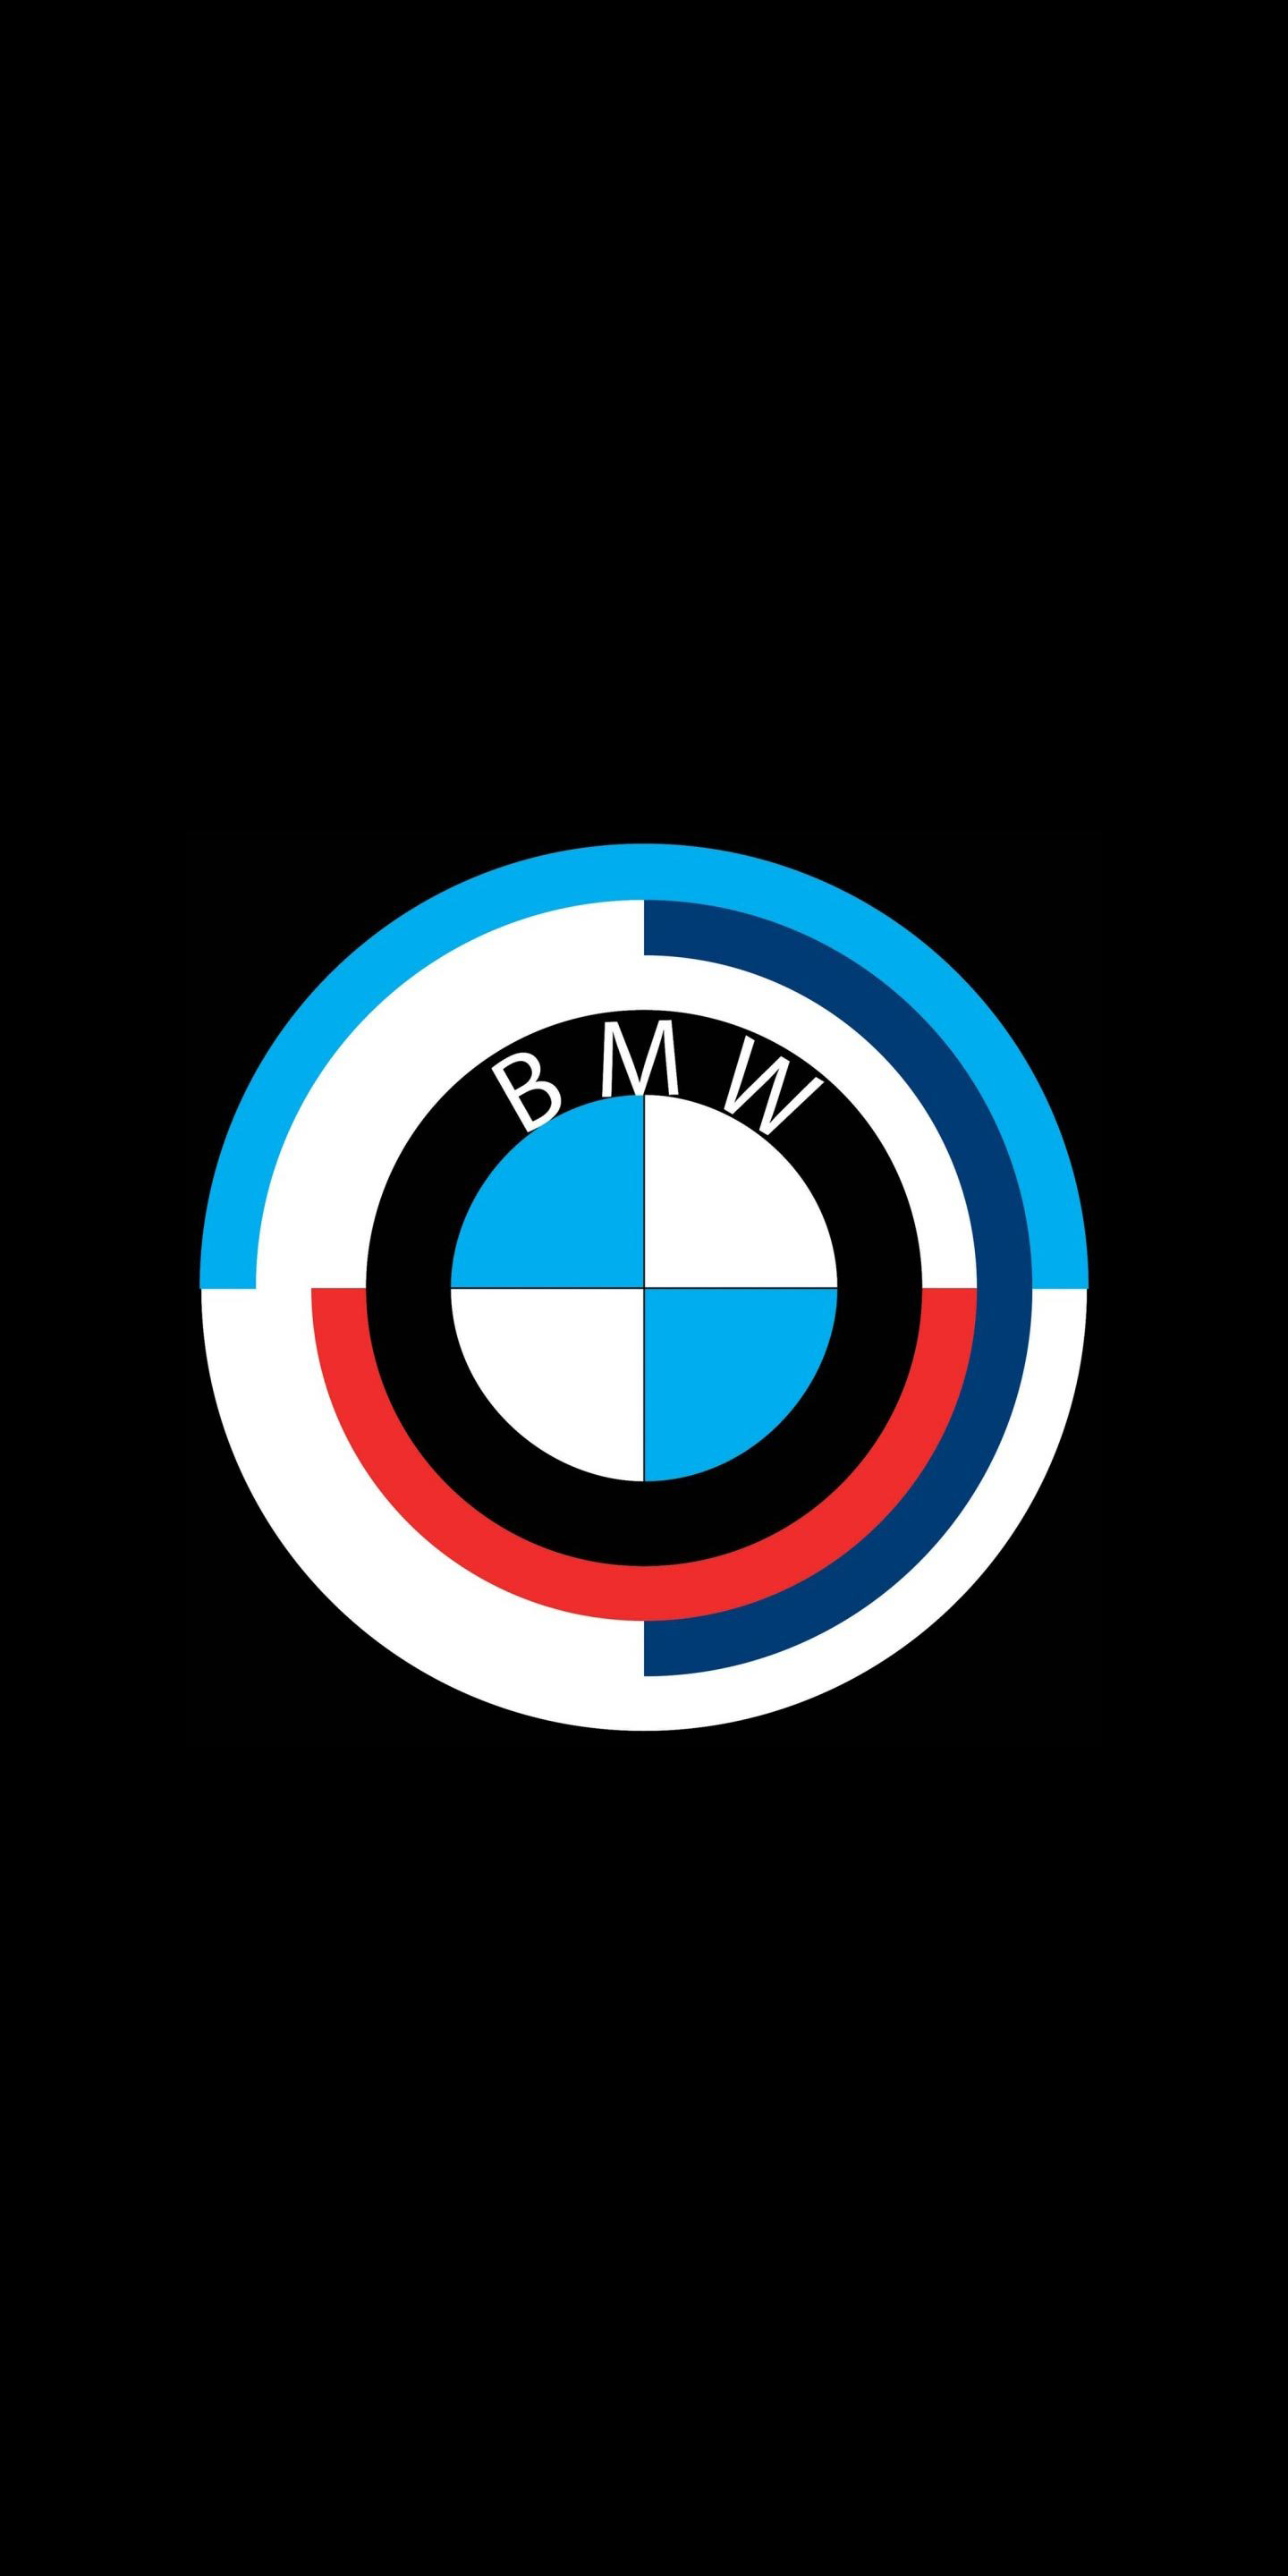 Hd Mobile Wallpaper Iphone Wallpaper 16 Bmw Wallpapers